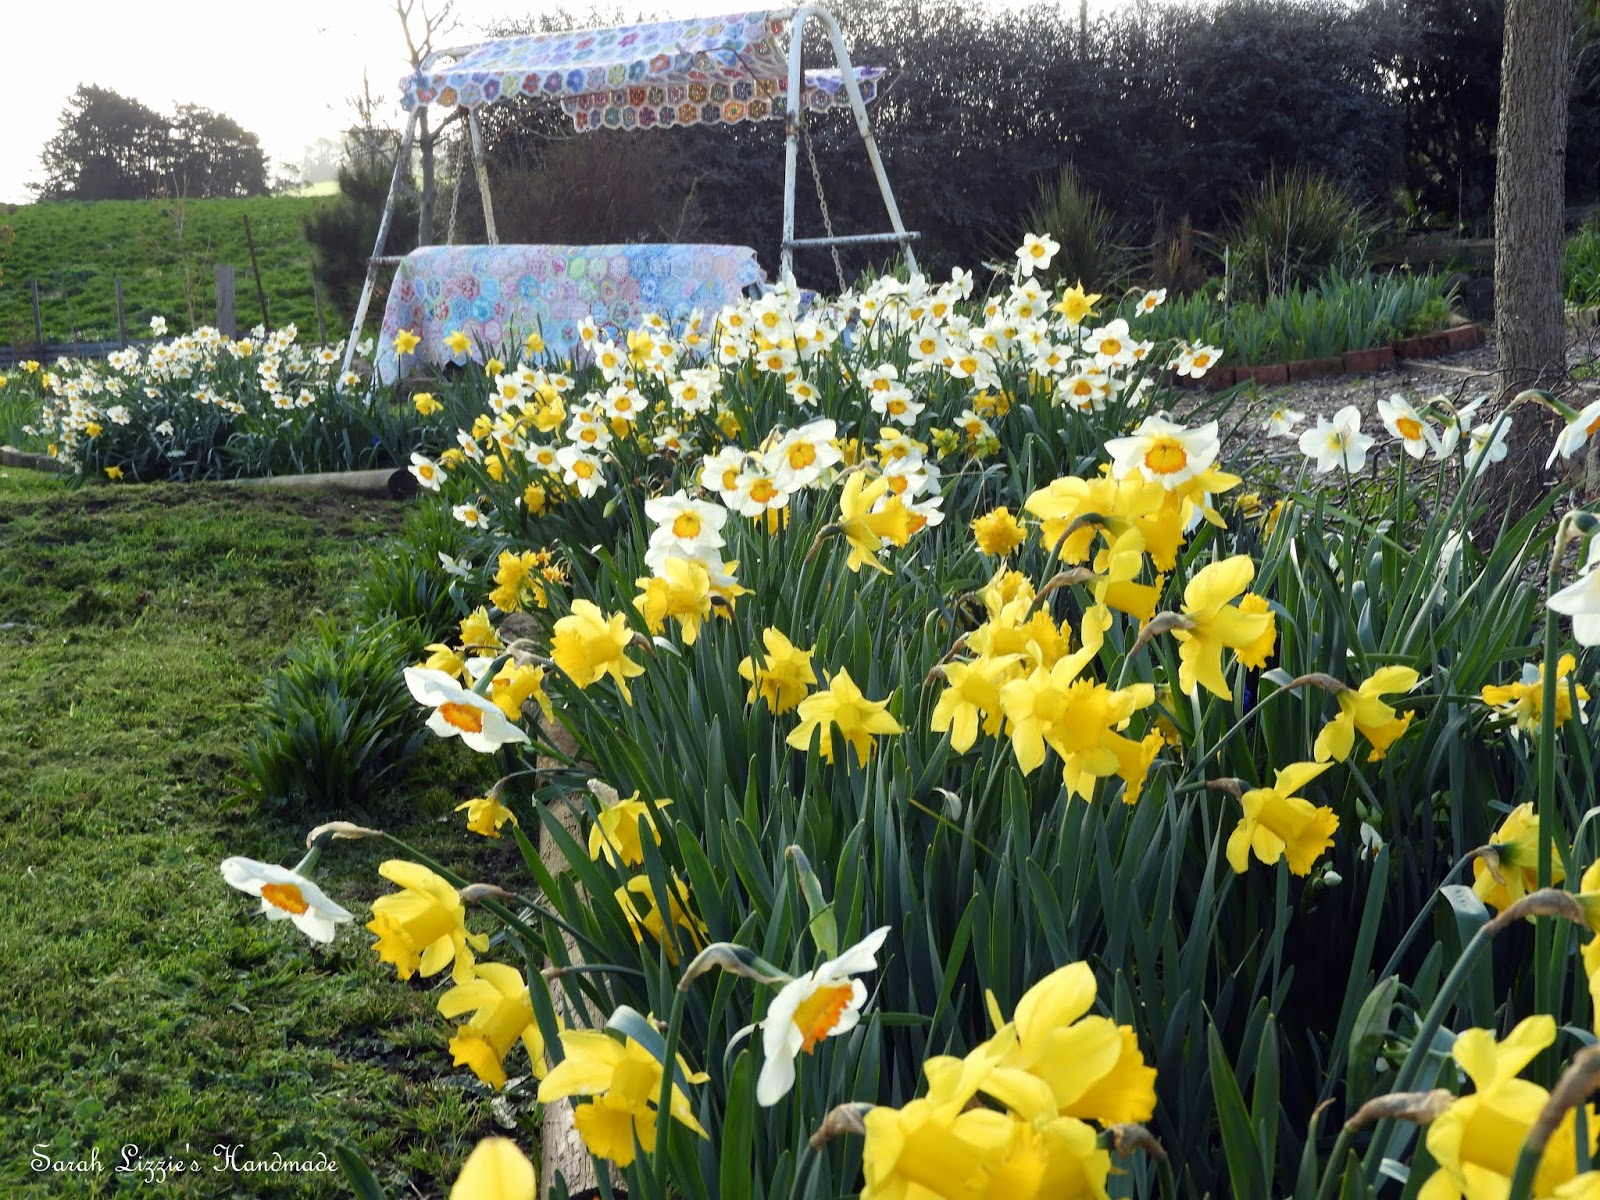 How do daffodils use your love to manipulate you